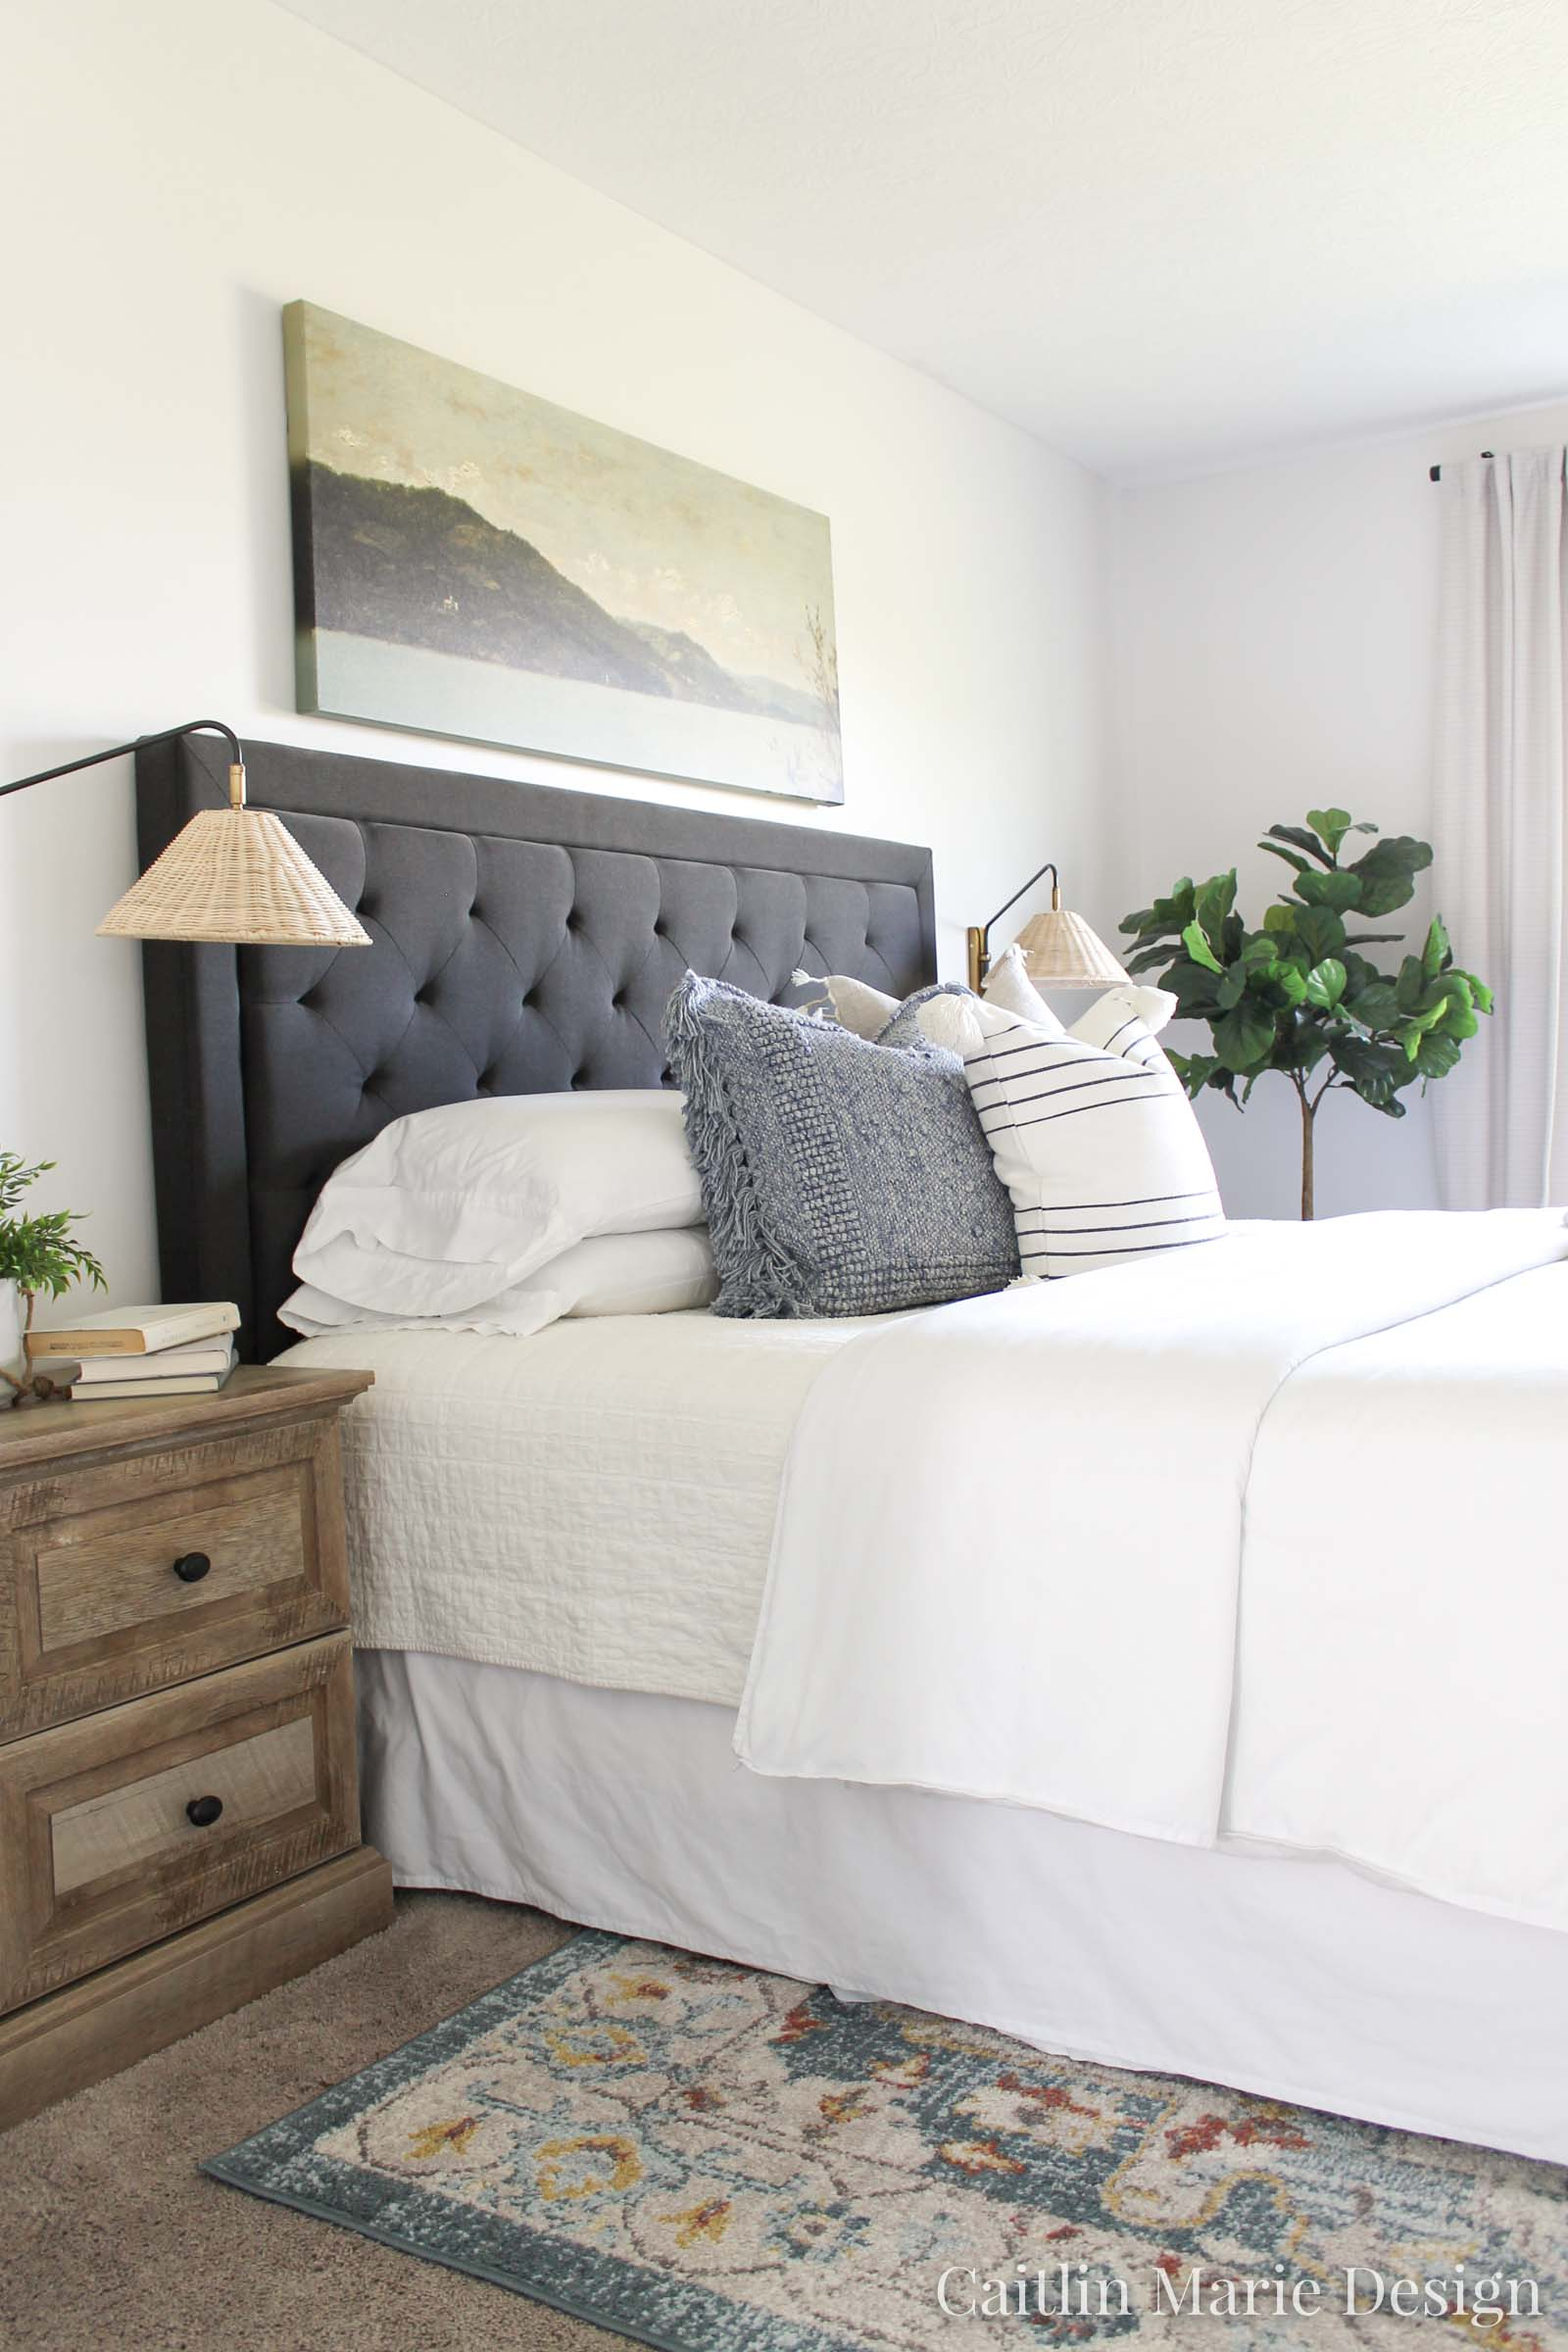 Coastal Home Decor Refresh with Serena & Lily | coastal bedroom, rattan plug in wall sconces, dark headboard, neutral bedroom decor, wide art above the bed, vintage landscape painting